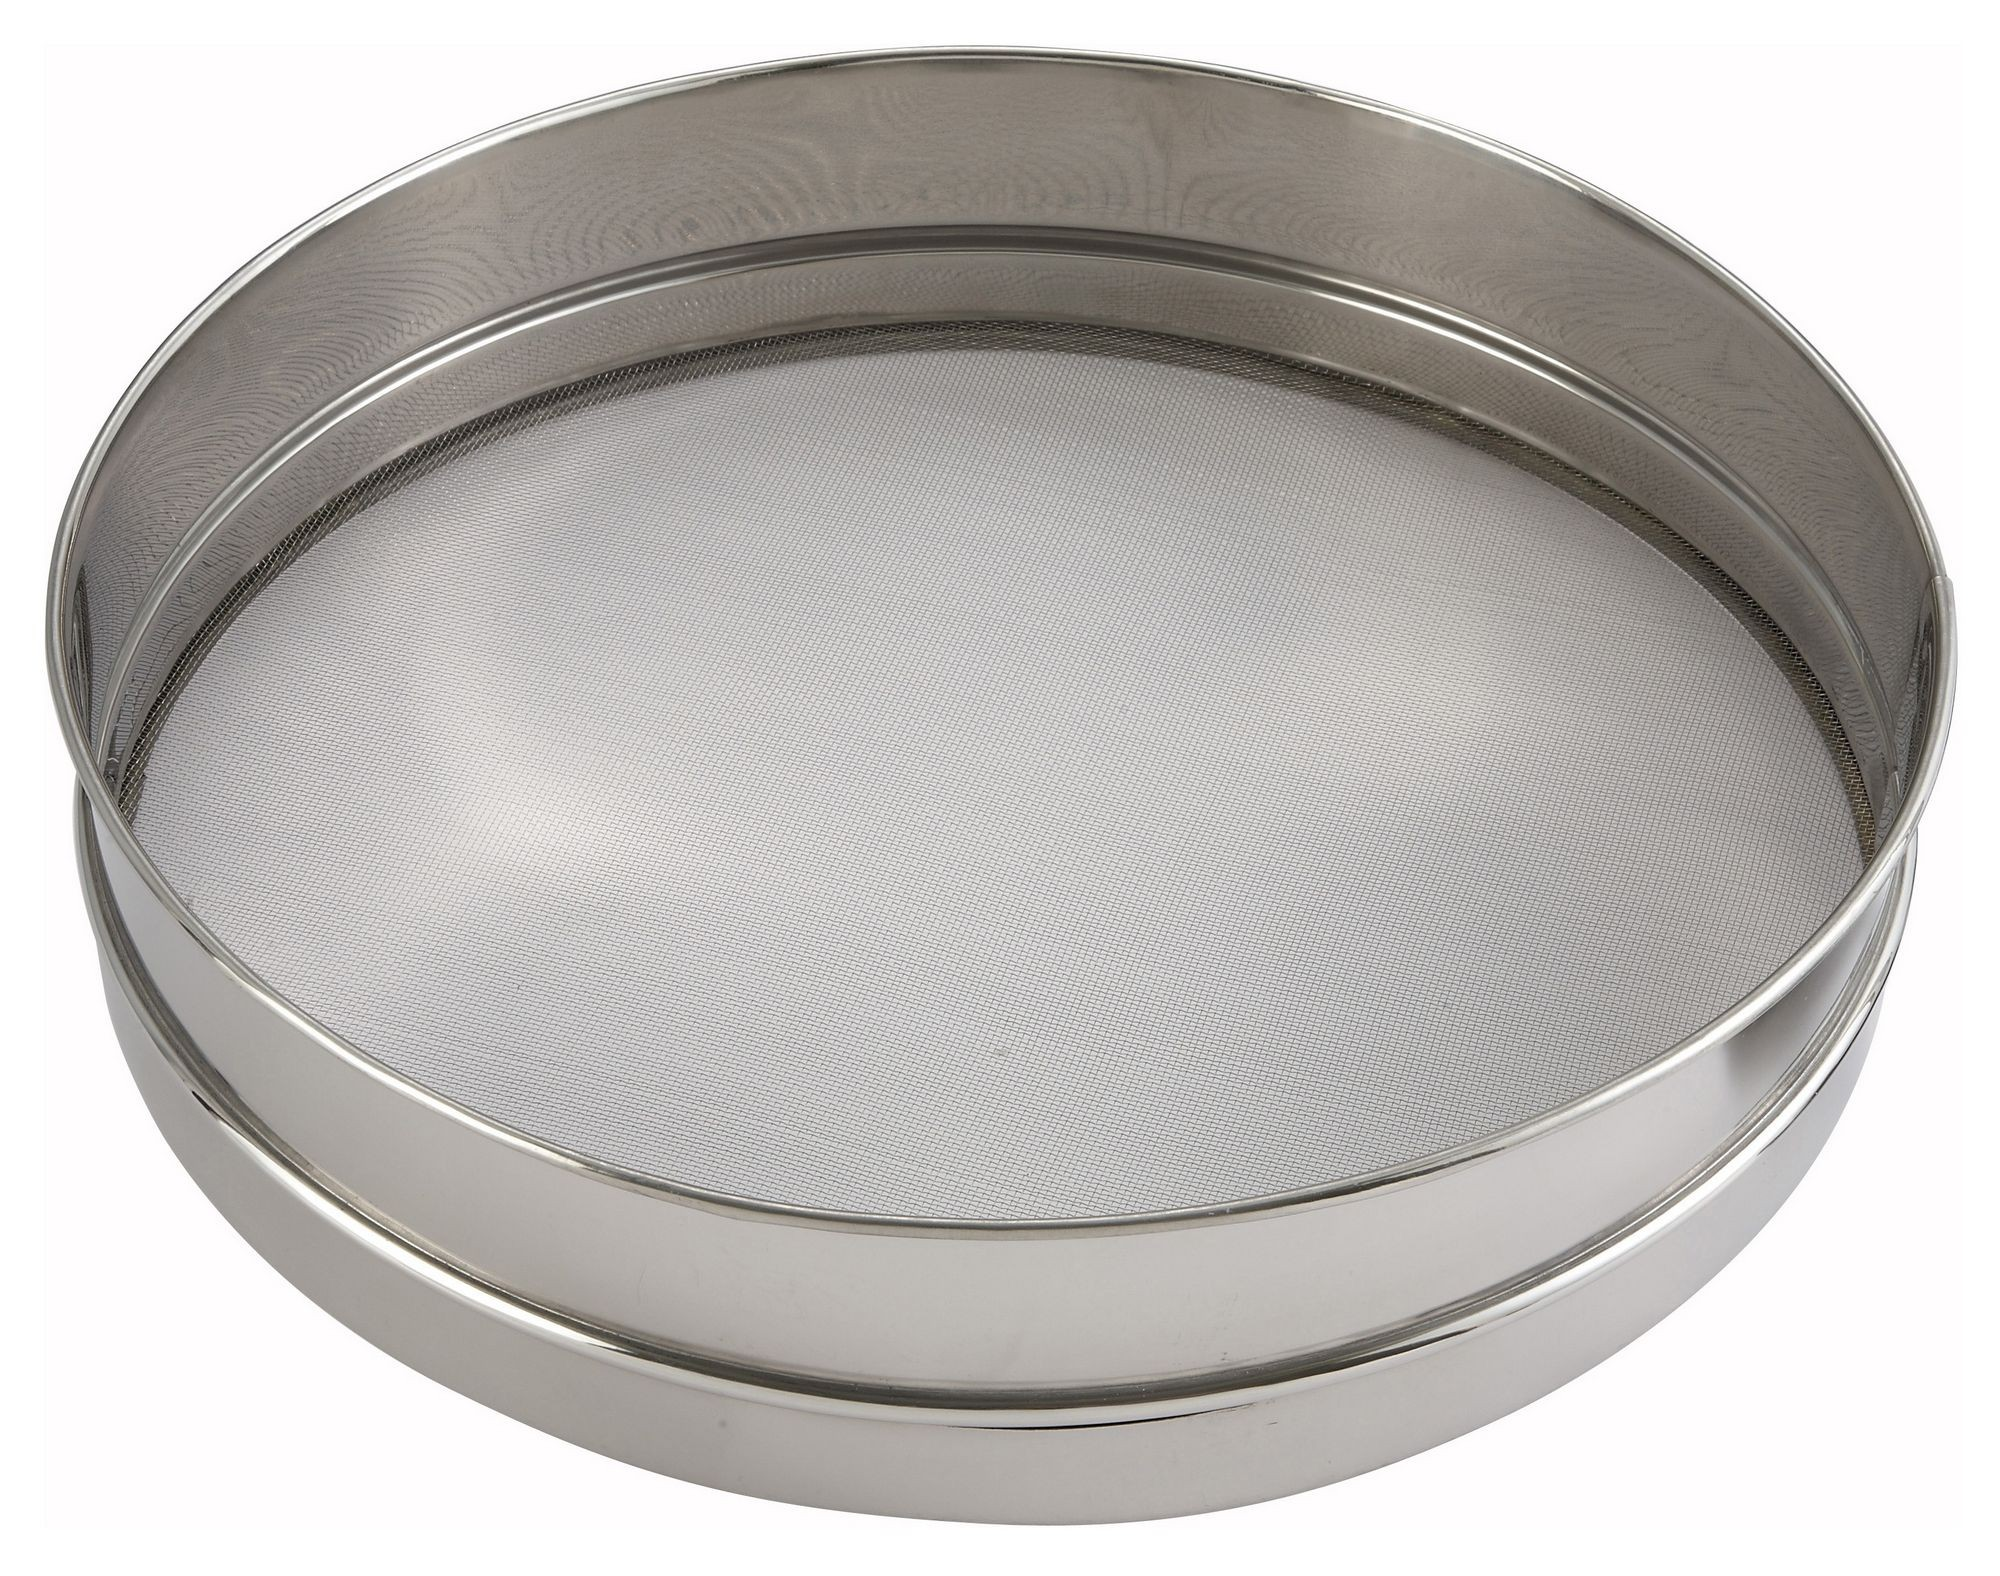 Stainless Steel Sieve With Rim/Mesh - 10 Dia. x 3 Deep